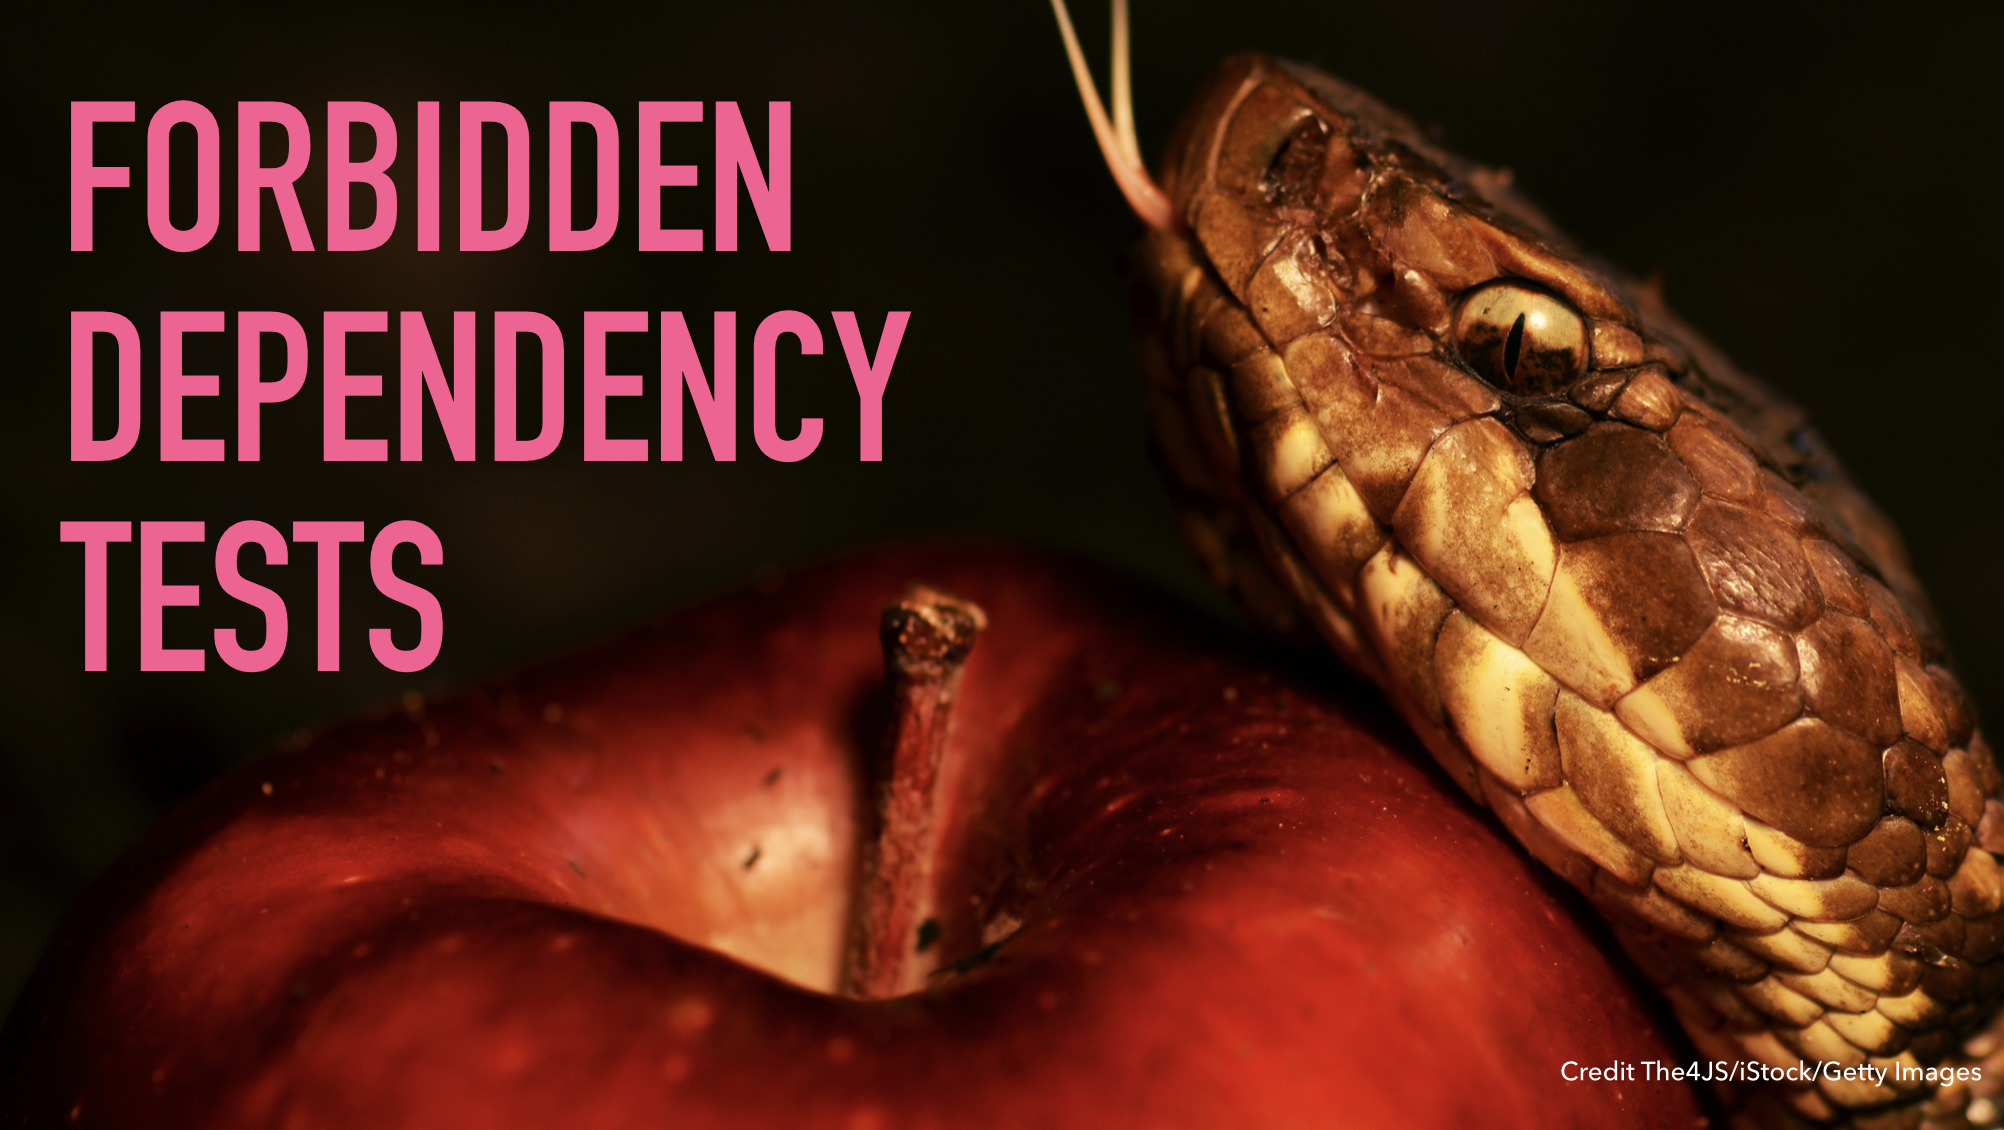 Slide text: Forbidden dependency tests.